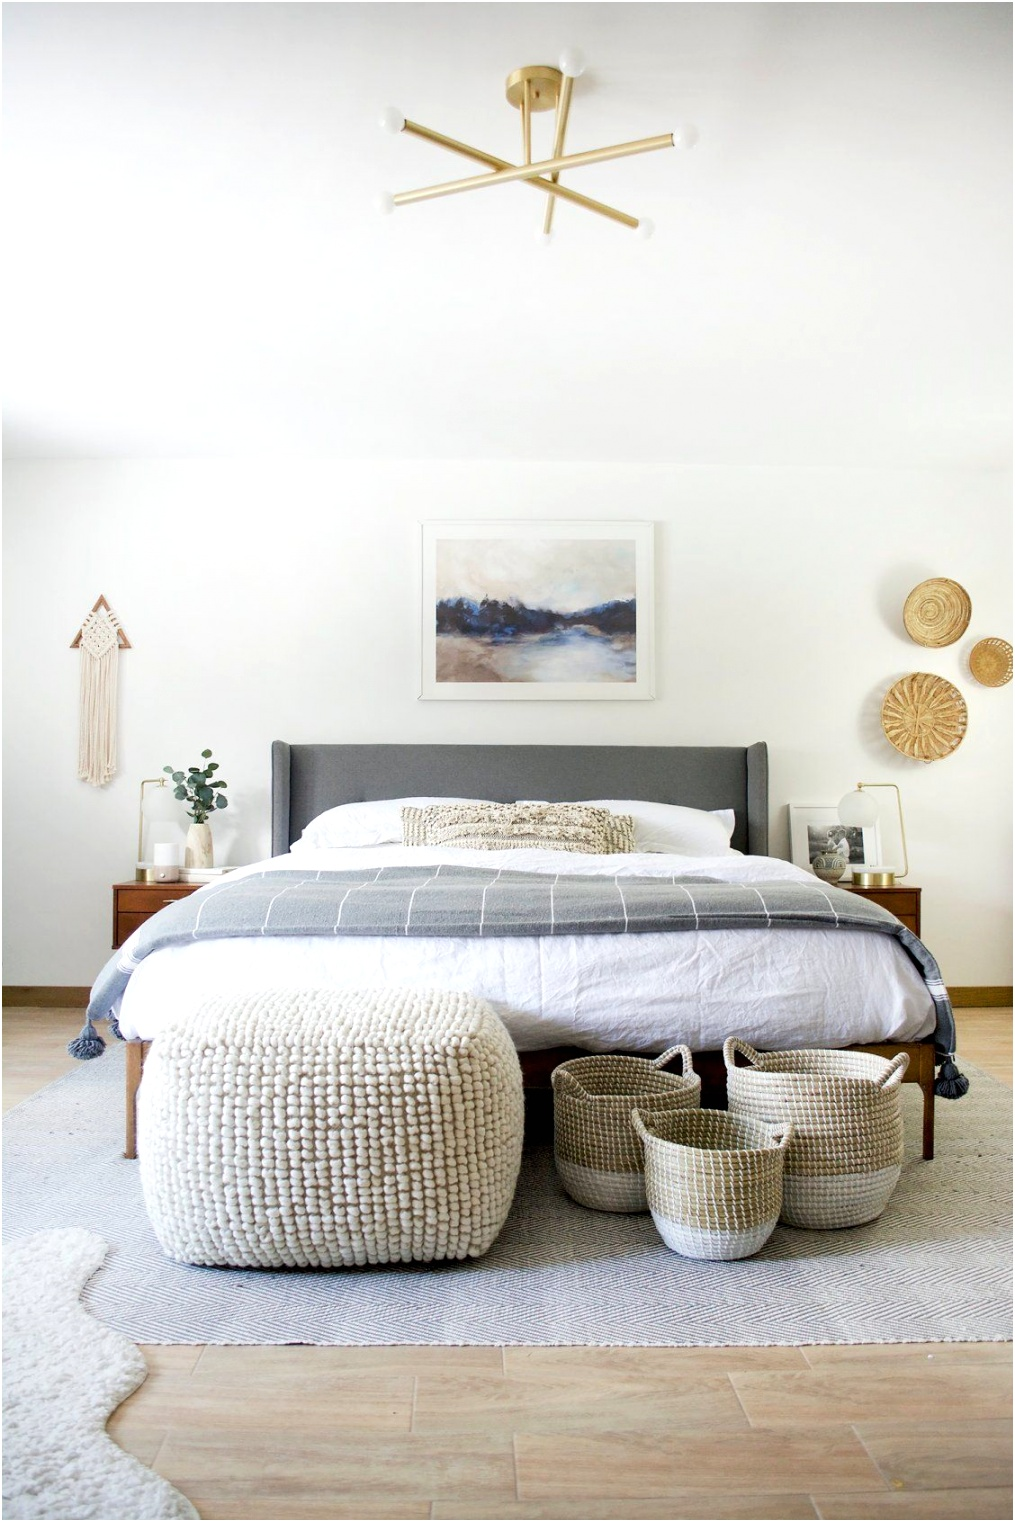 10 Modern Bedroom Ideas to Help You with Your Summertime Sadness 8